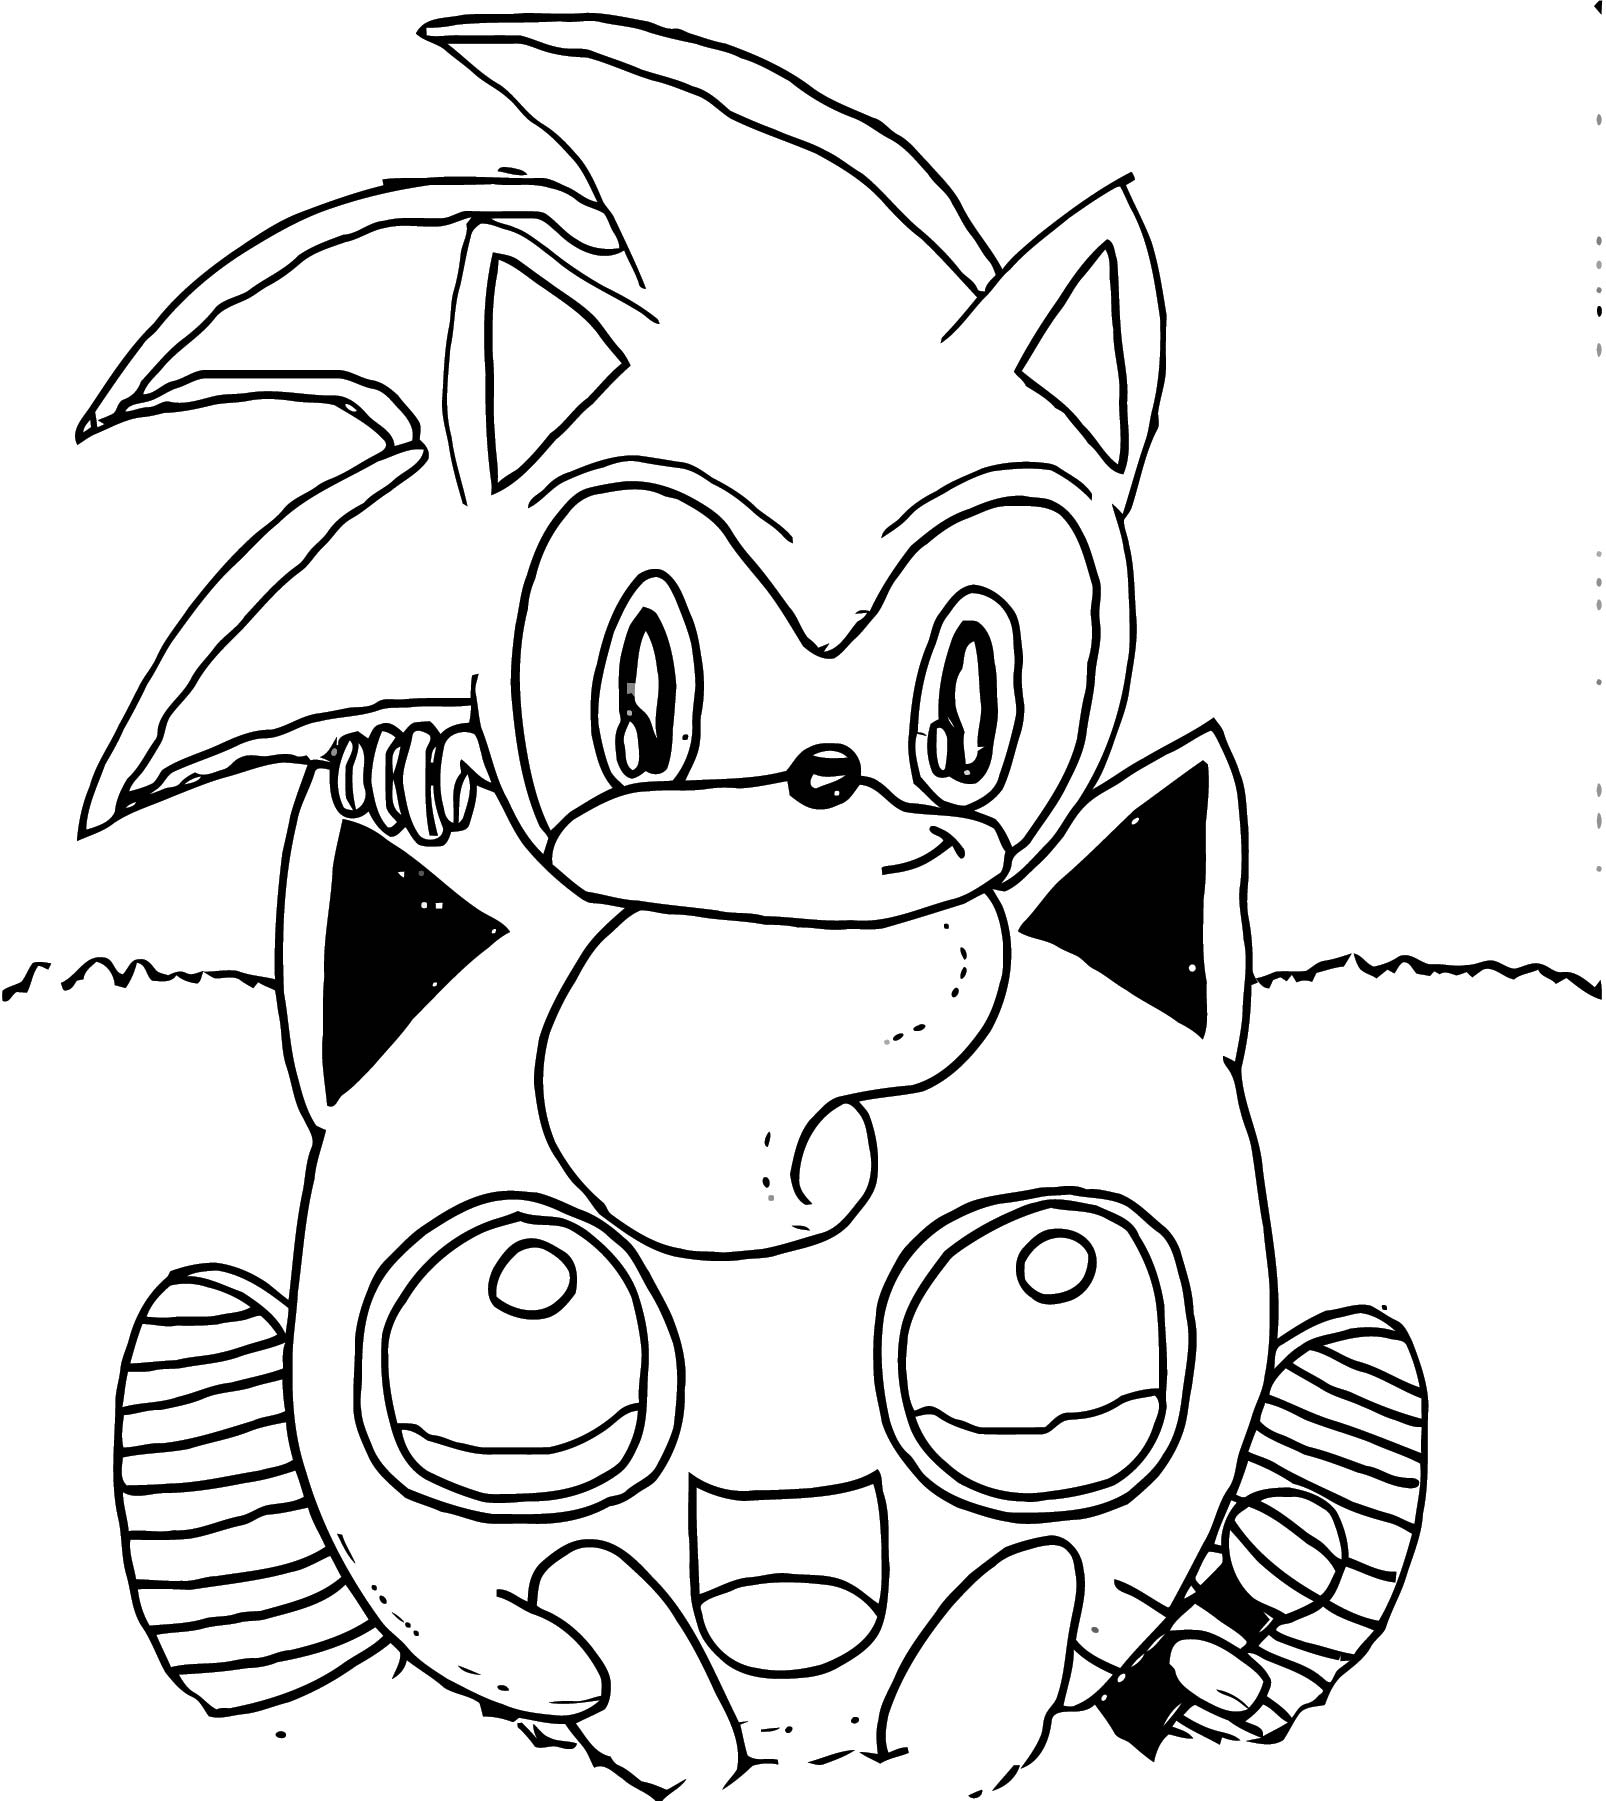 Sonic And Jigglypuff Coloring Page